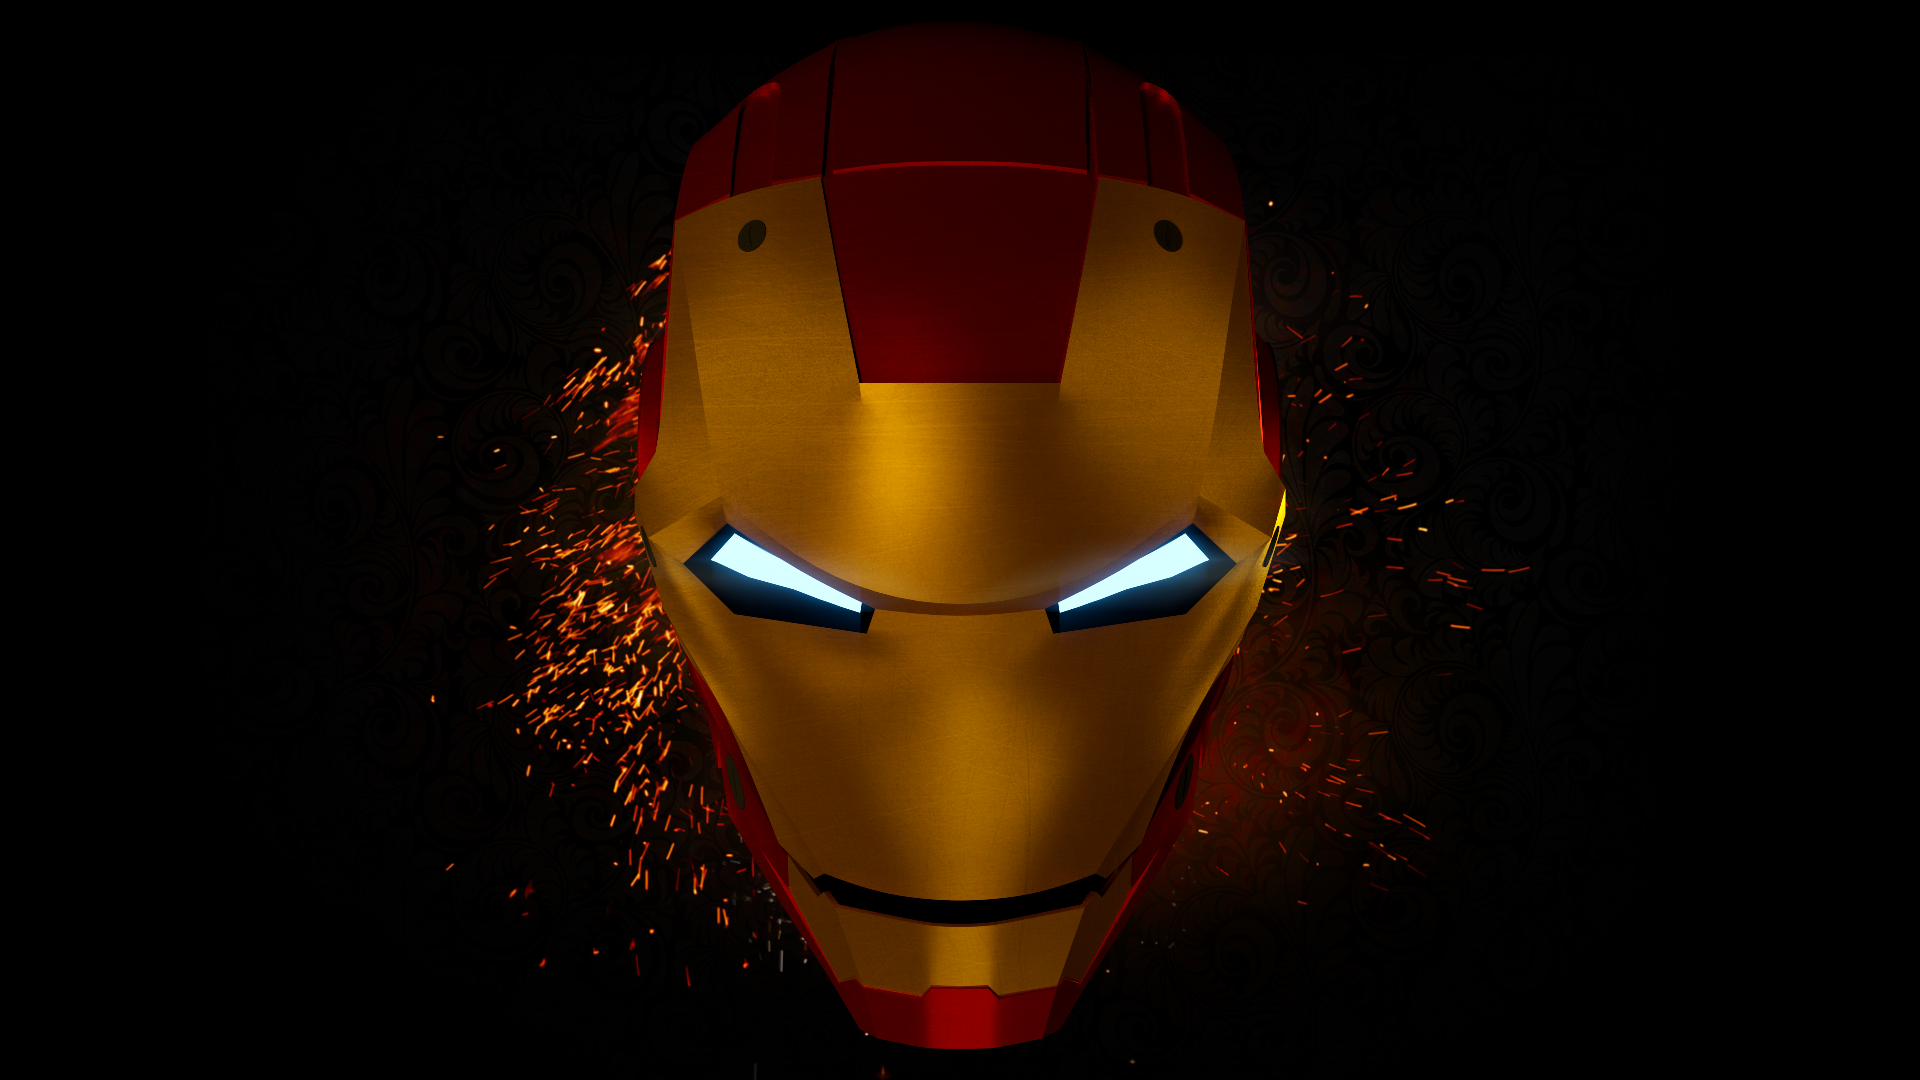 Iron Man Helmet Wallpaper Gallery Im Pinterest Iron Man Iron